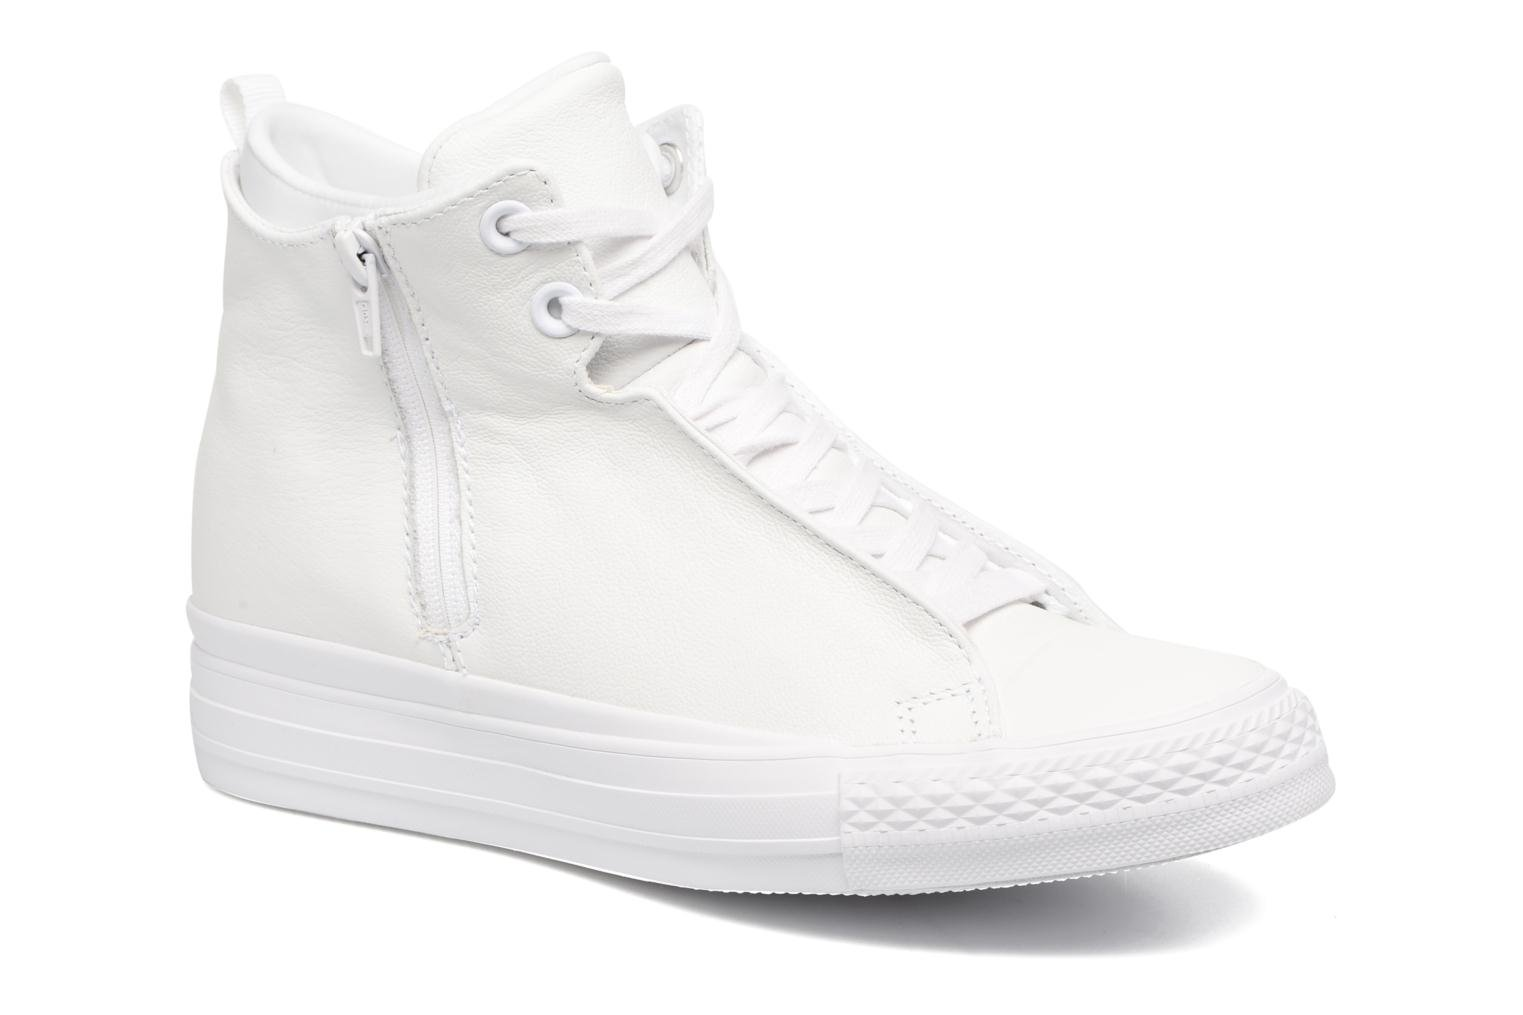 Chuck Taylor All Star Selene Monochrome Leather Mid White